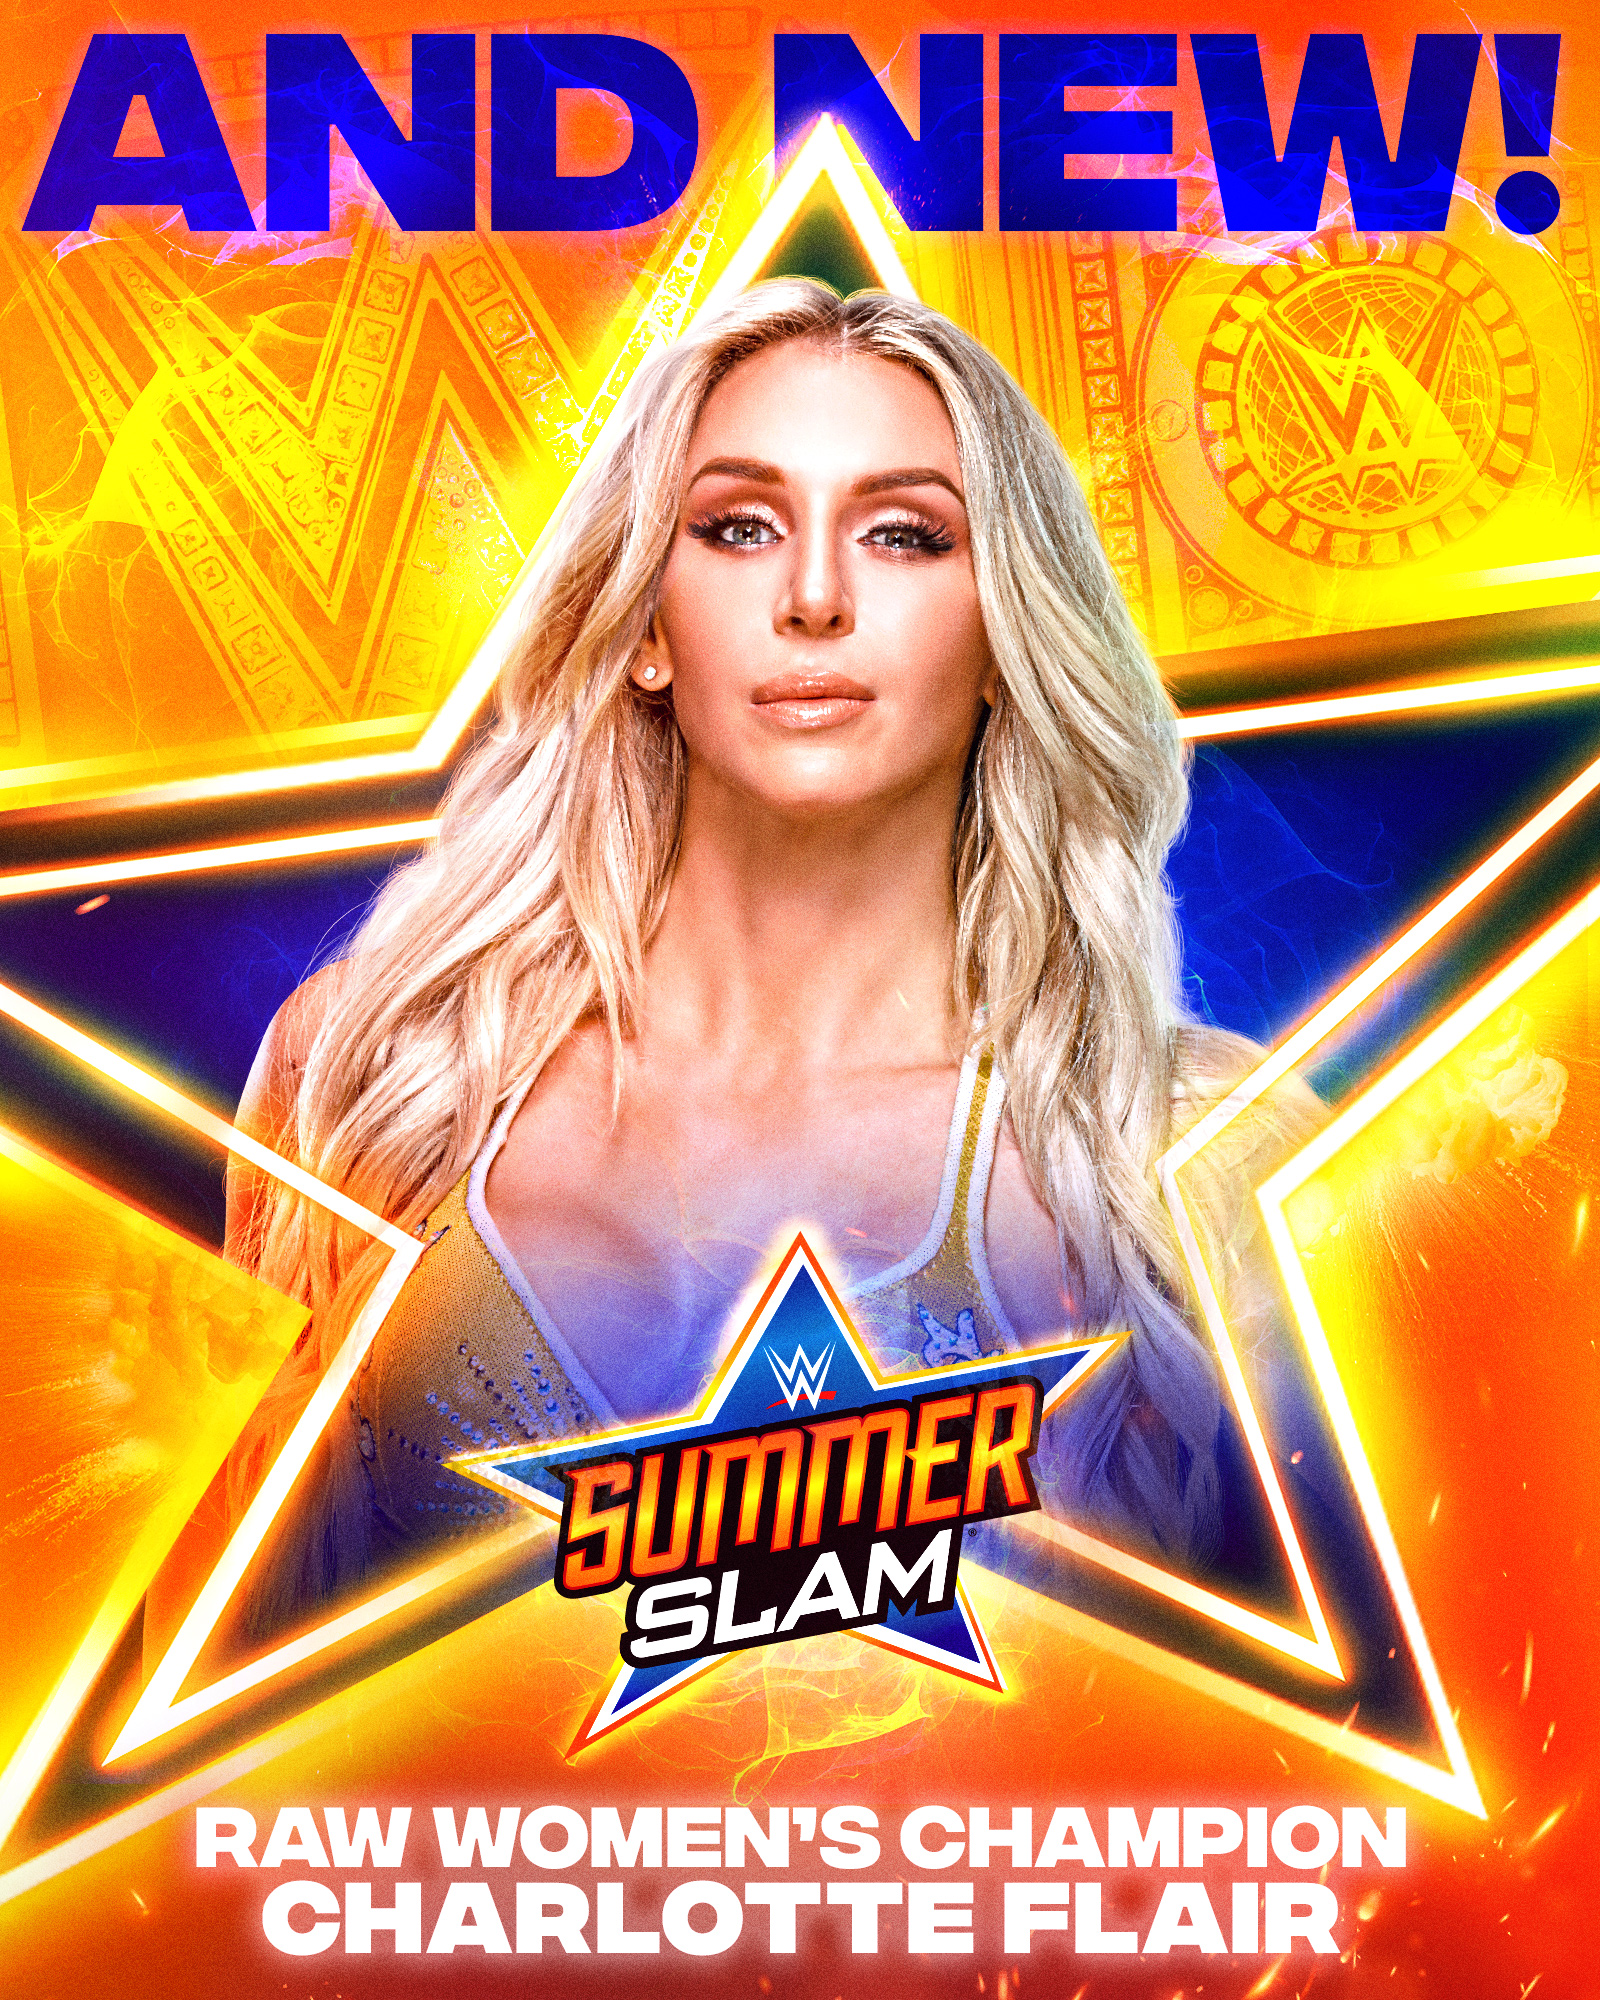 WWE Summerslam 2021: Charlotte Flair Becomes A 12-Time Champion 48